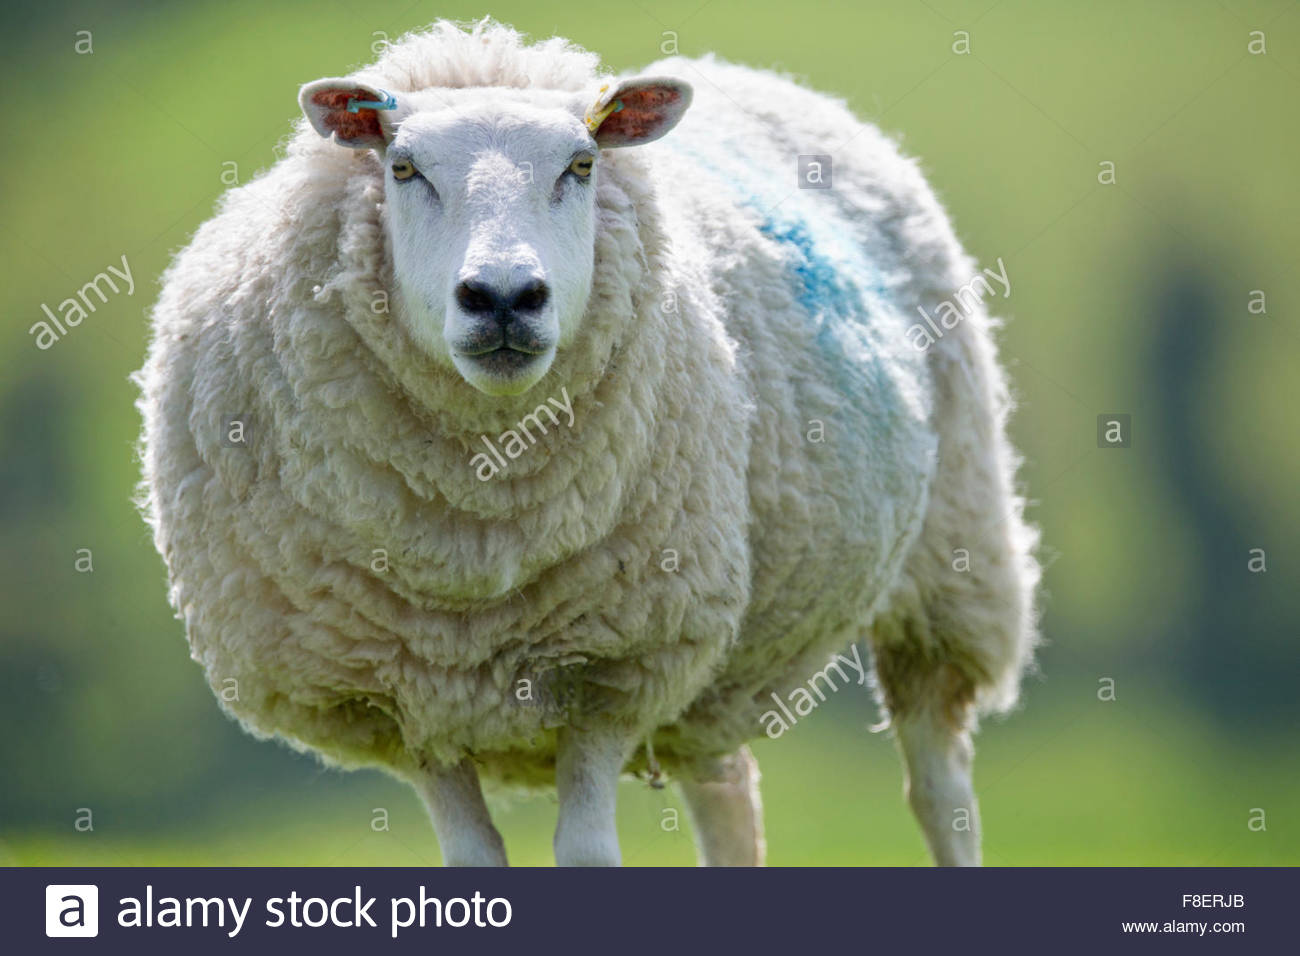 Portrait of sheep - Stock Image